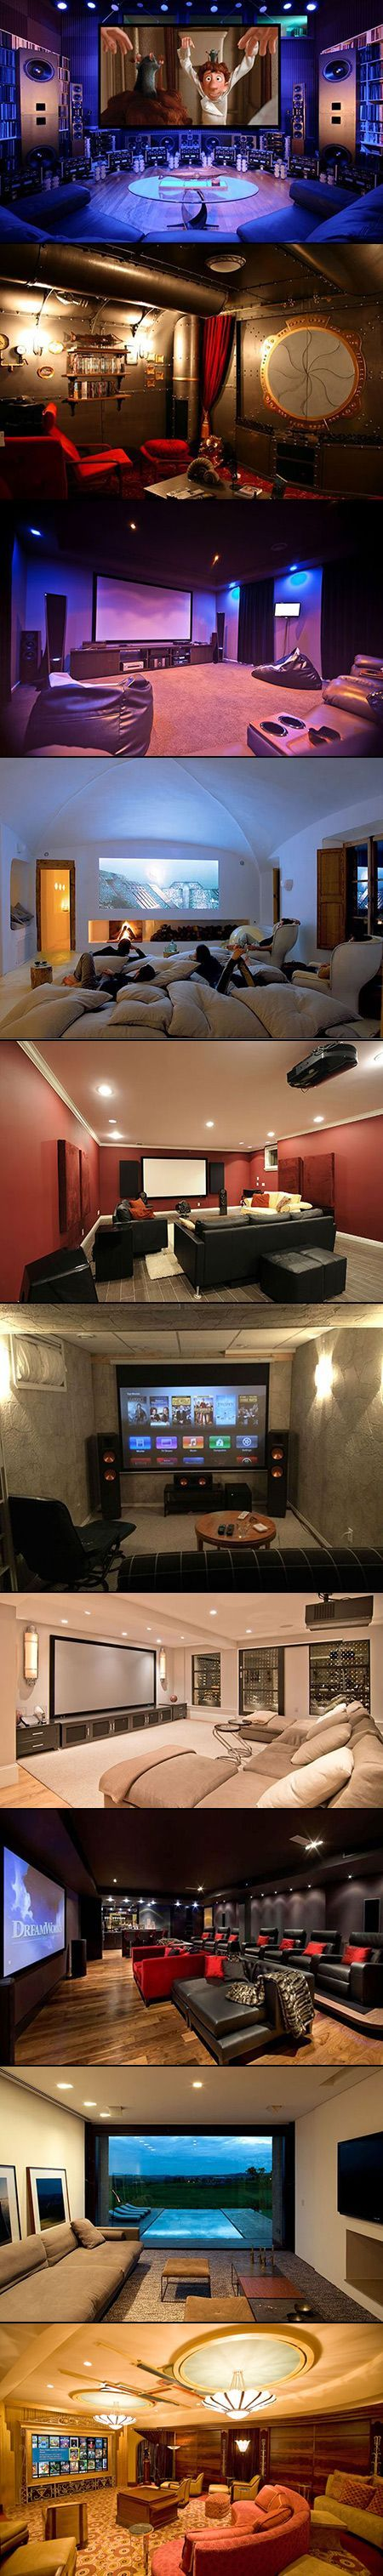 best 25 home theater lighting ideas on pinterest home theater best 25 home theater lighting ideas on pinterest home theater design home theater and cinema room